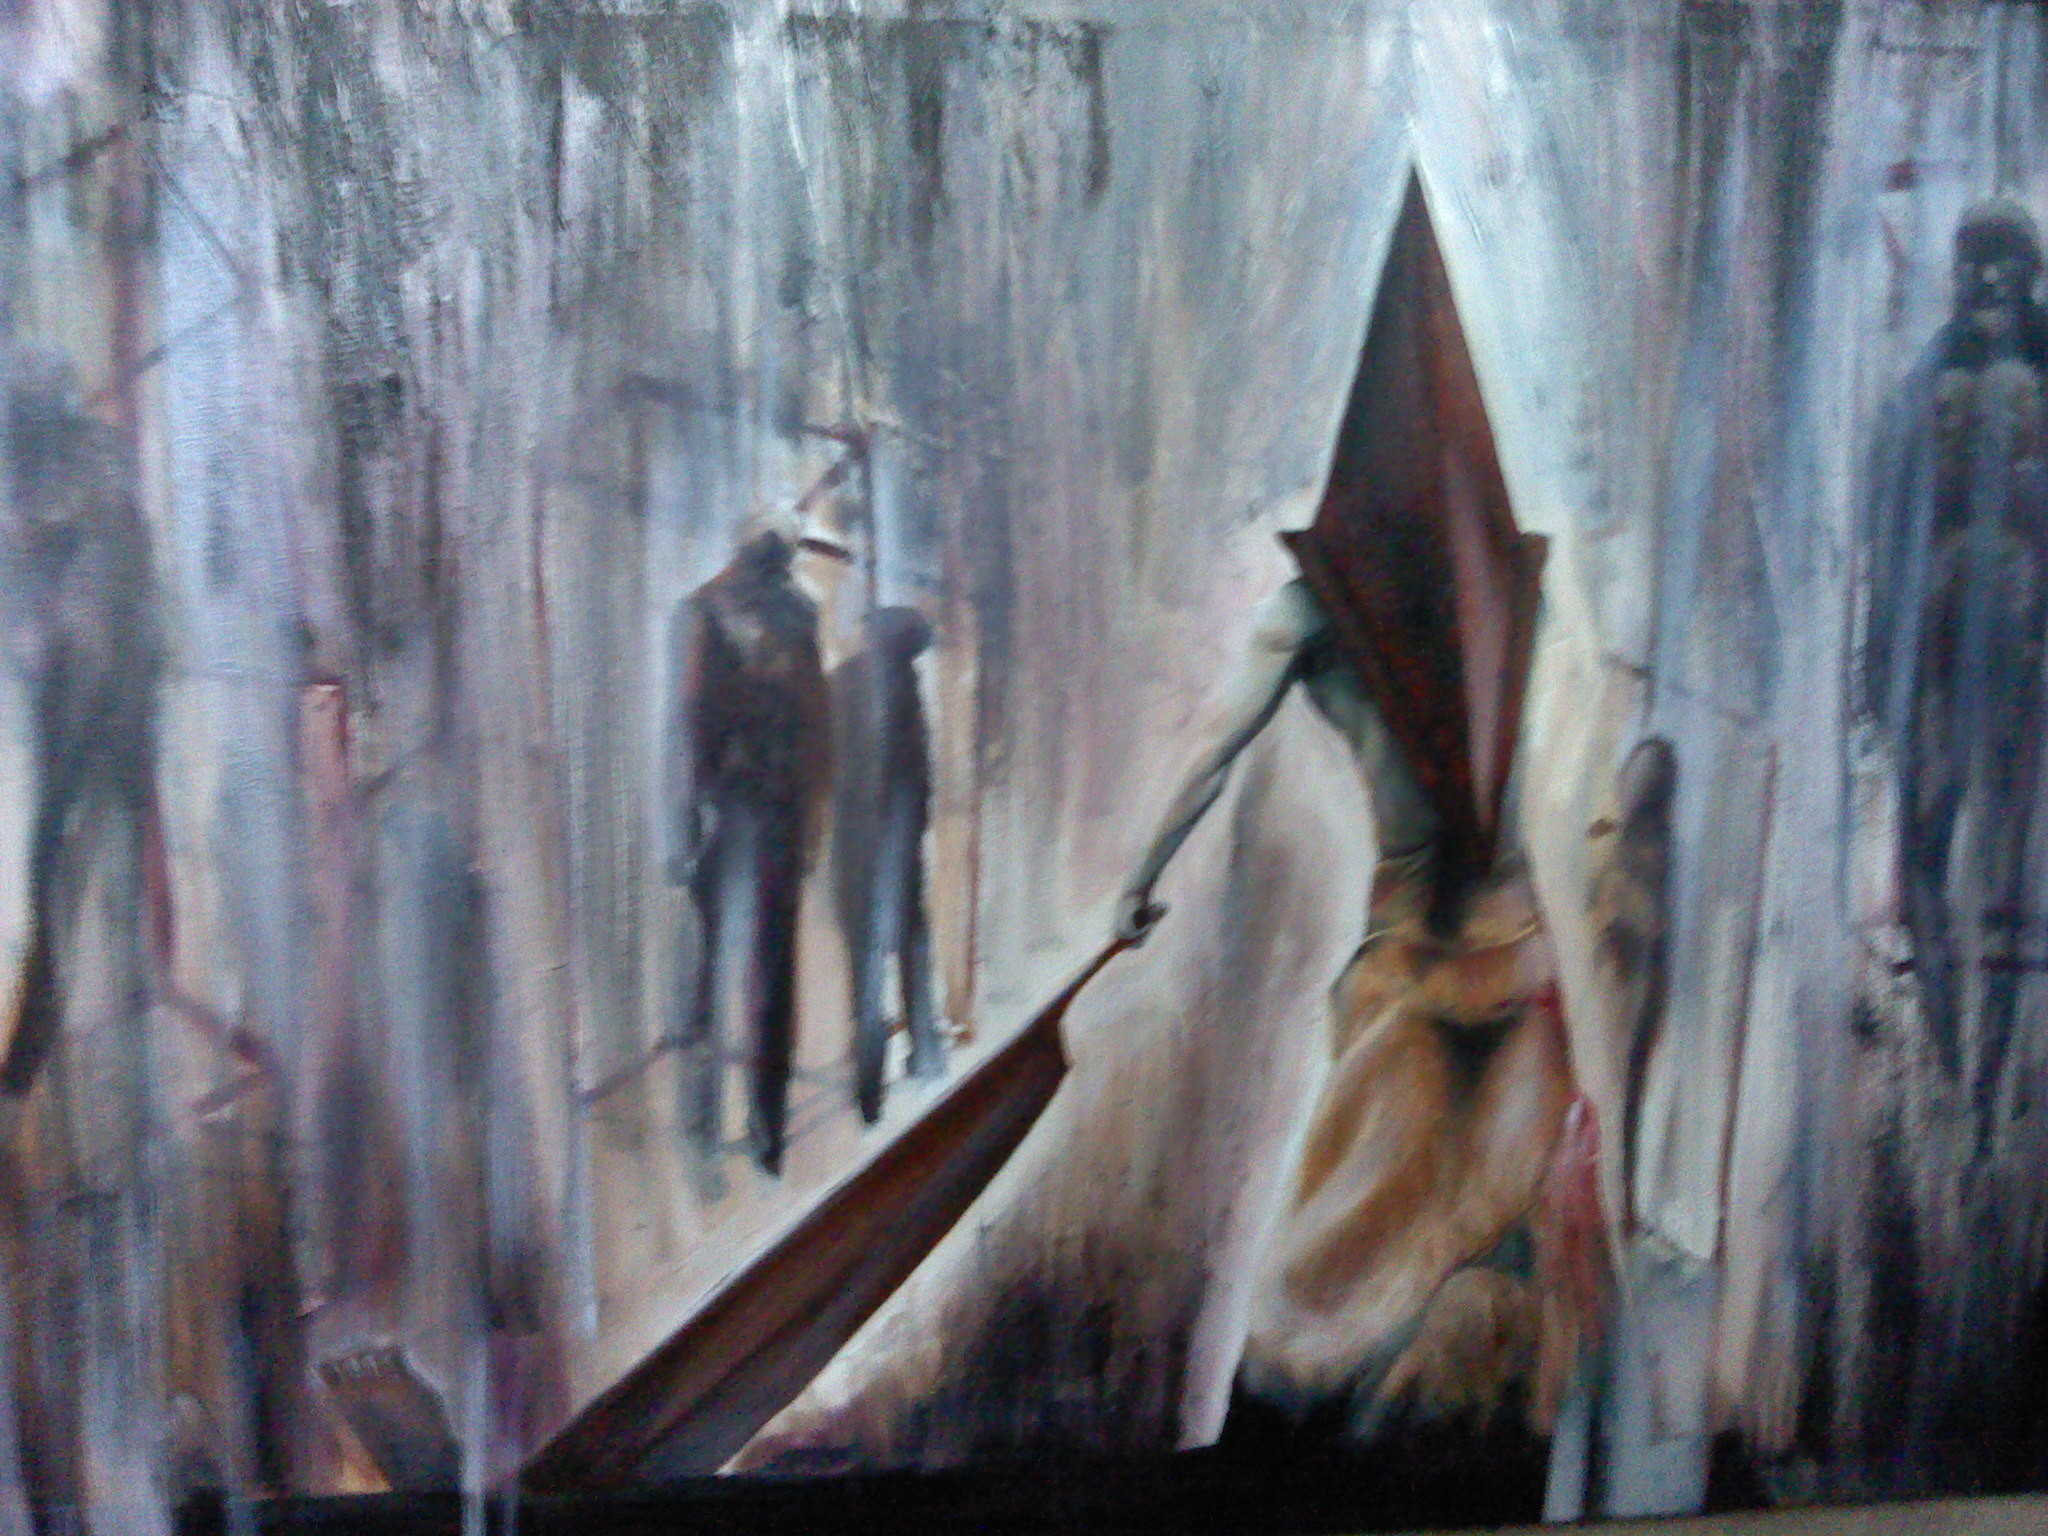 Silent Hill 2 Pyramid Head Wallpaper (65+ images)